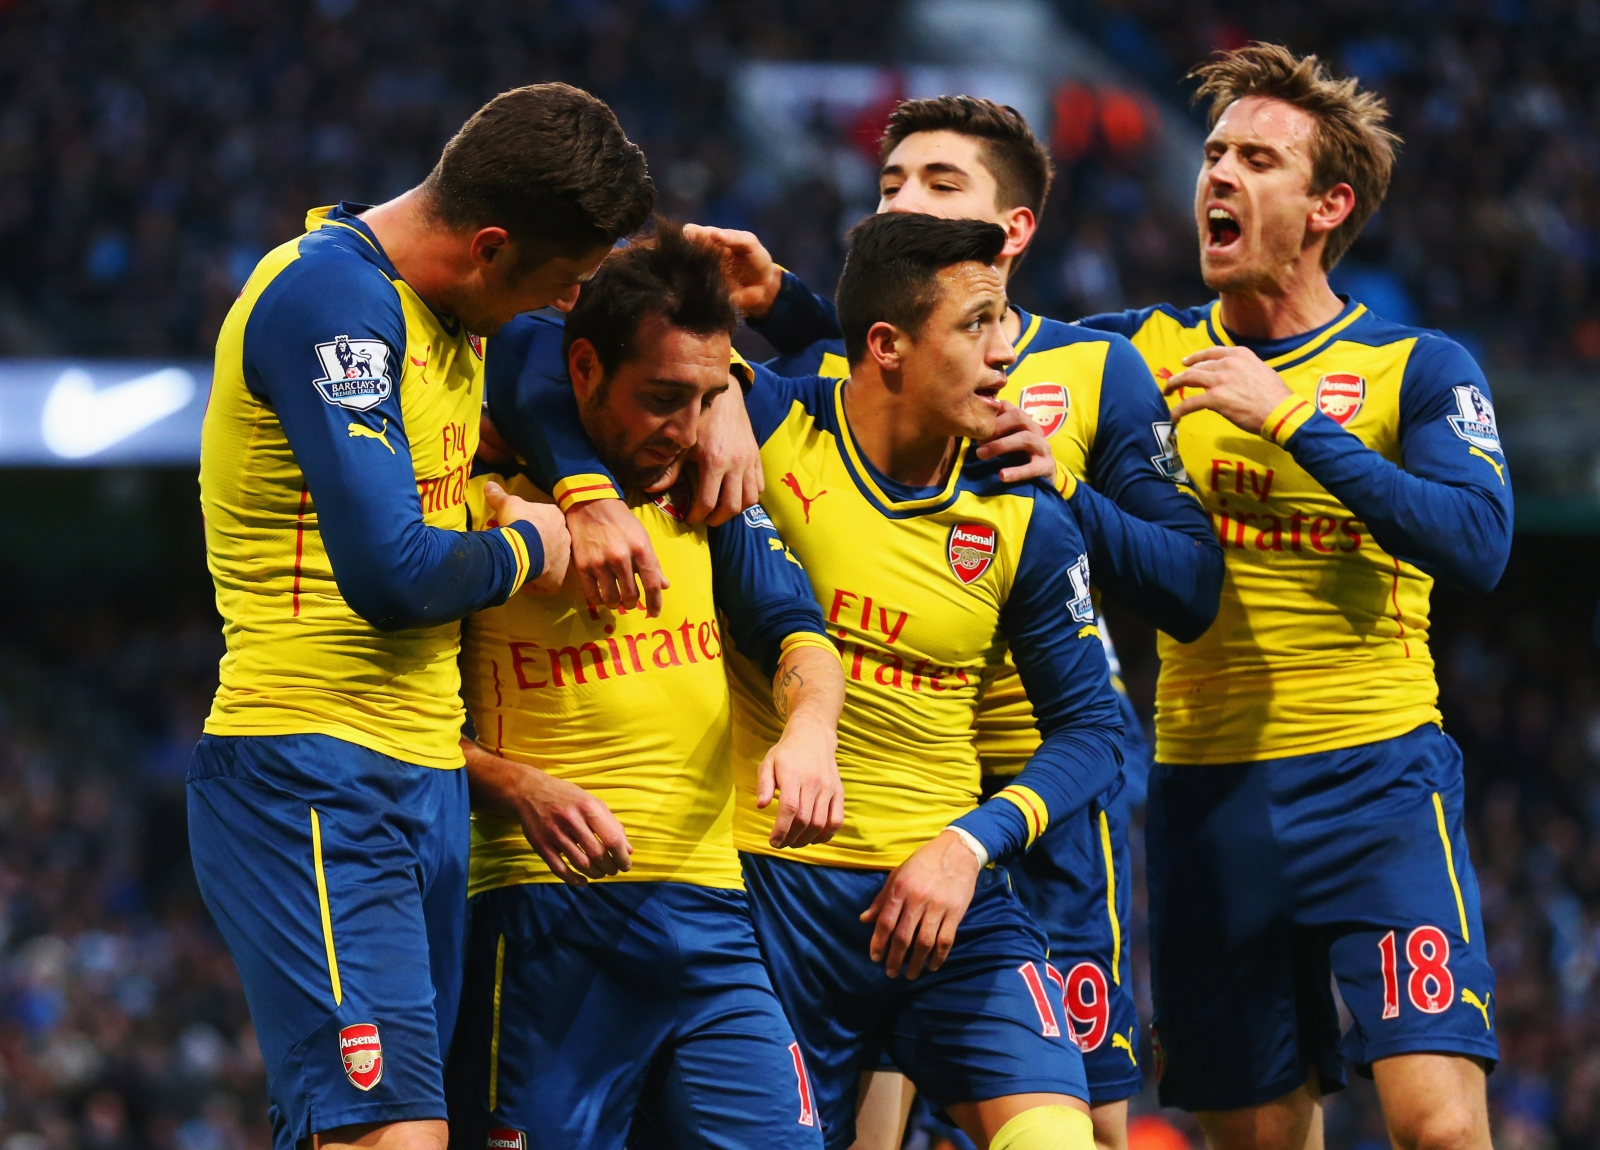 Sport Spotlight: Is victory over City the turning point for Arsenal?